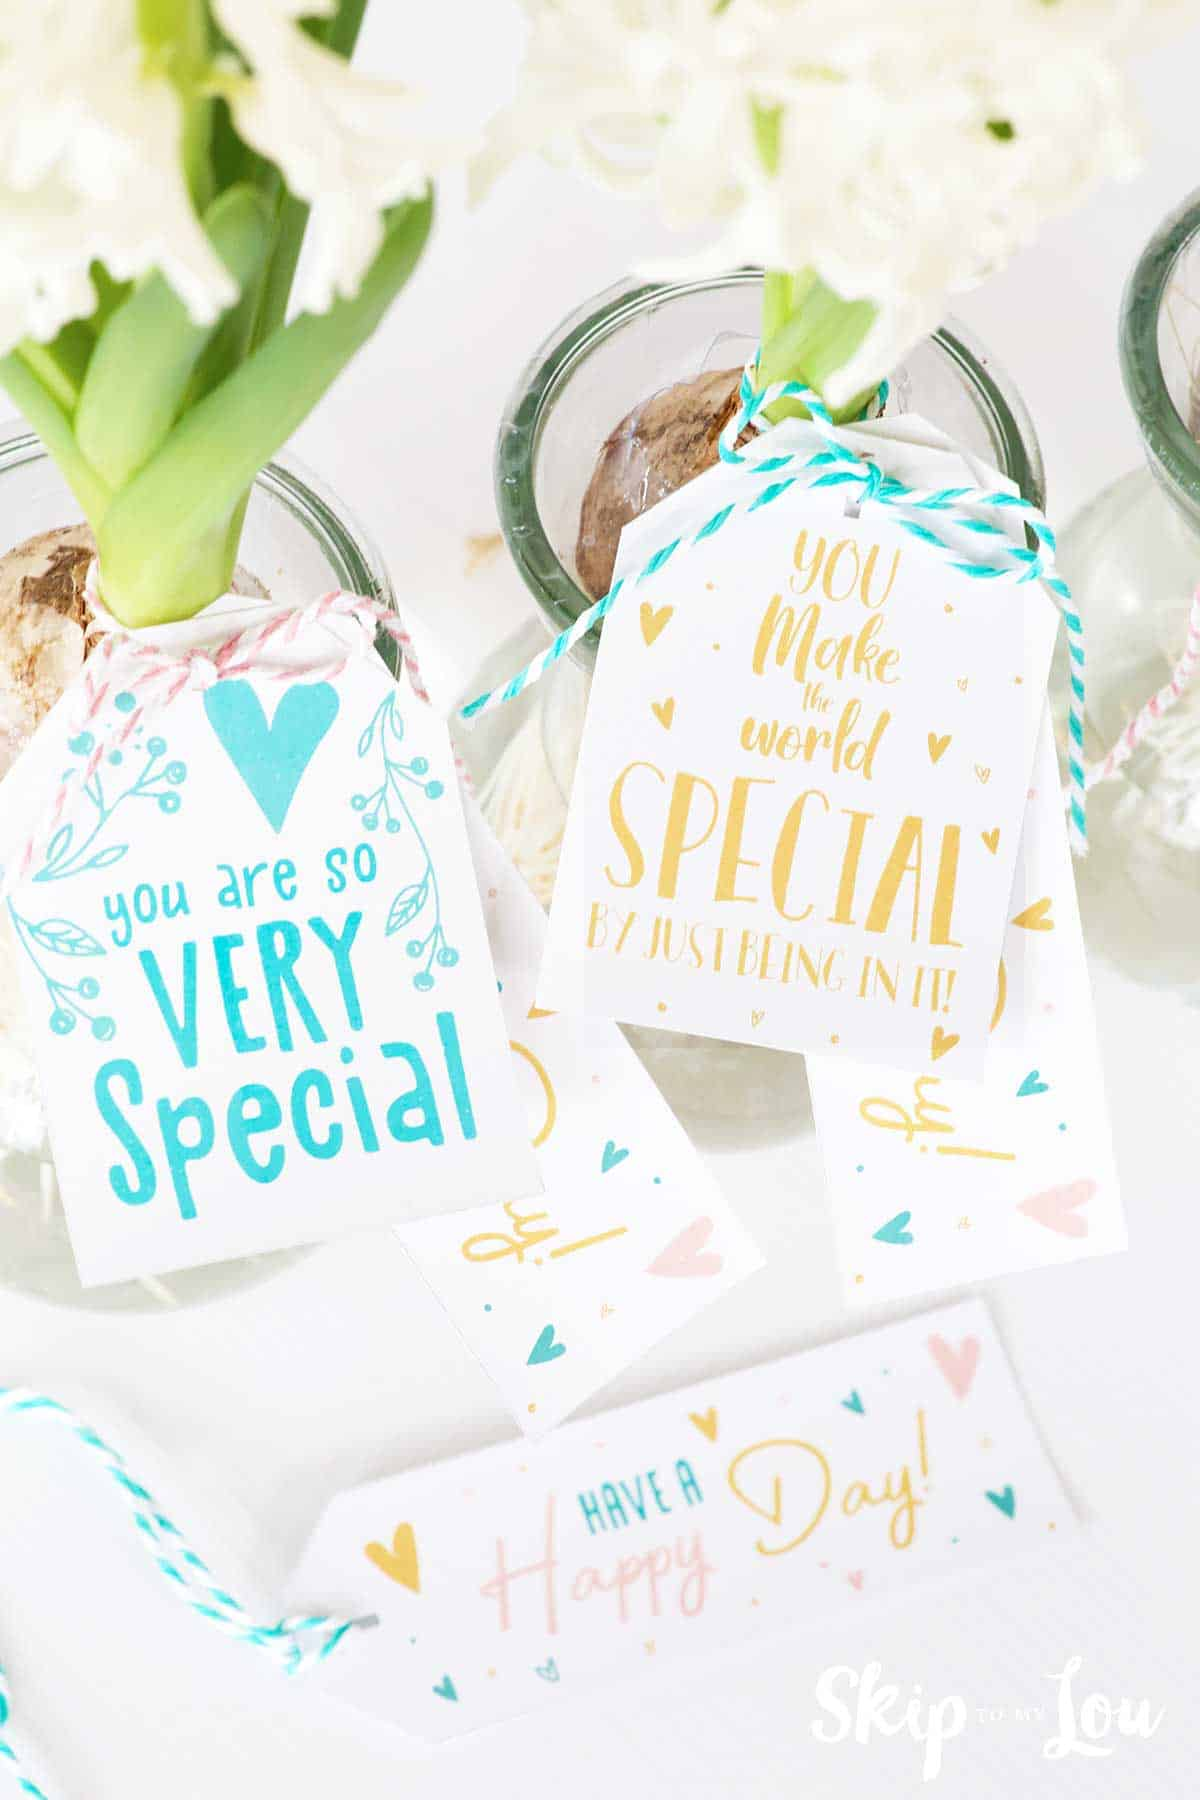 hyacinth flowers in vases with you are very special tags tied to vases with twine.